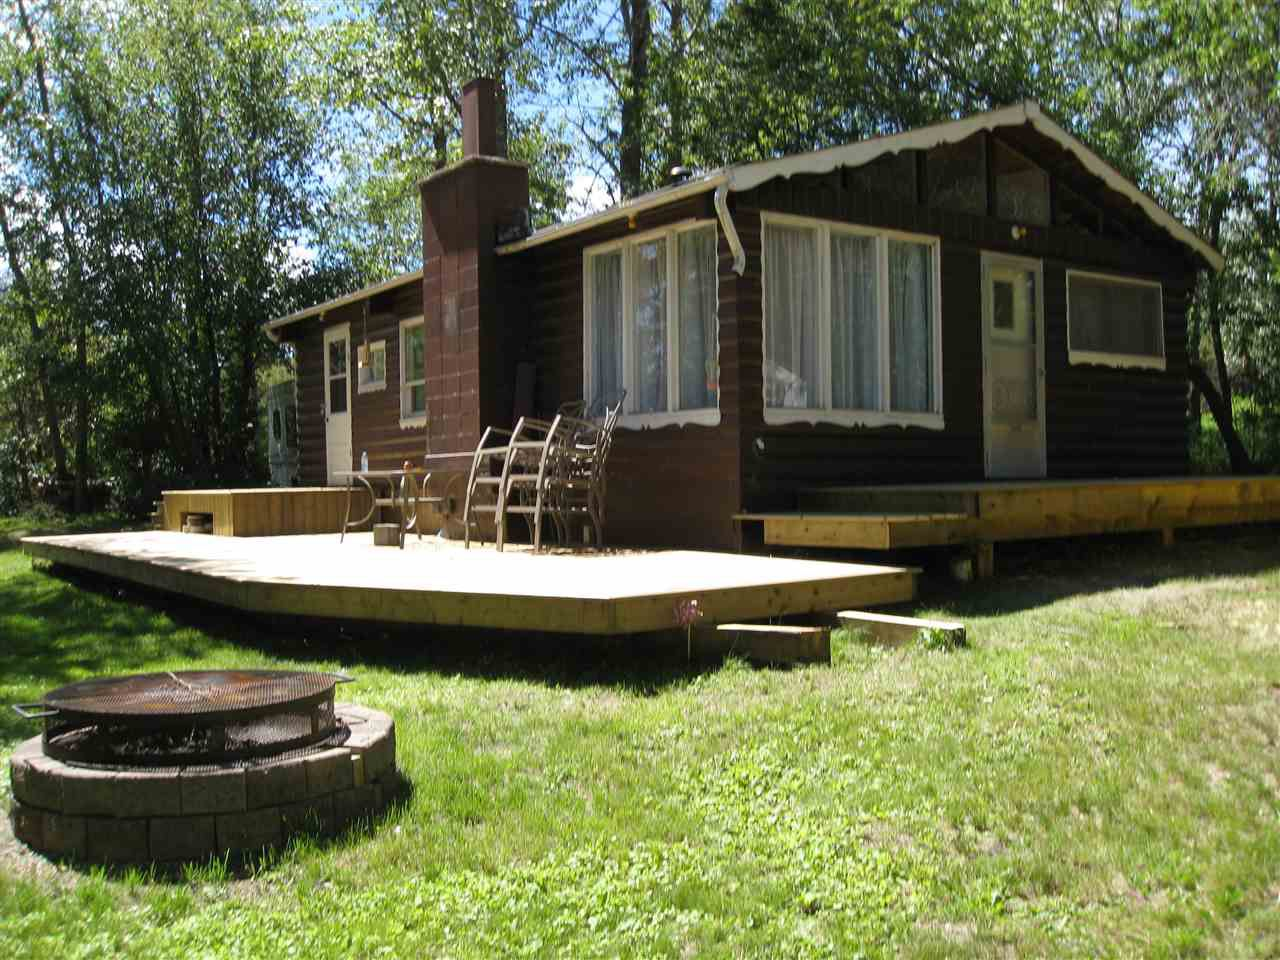 Main Photo: 6101 Willow Way: Rural Lac Ste. Anne County House for sale : MLS®# E4107285